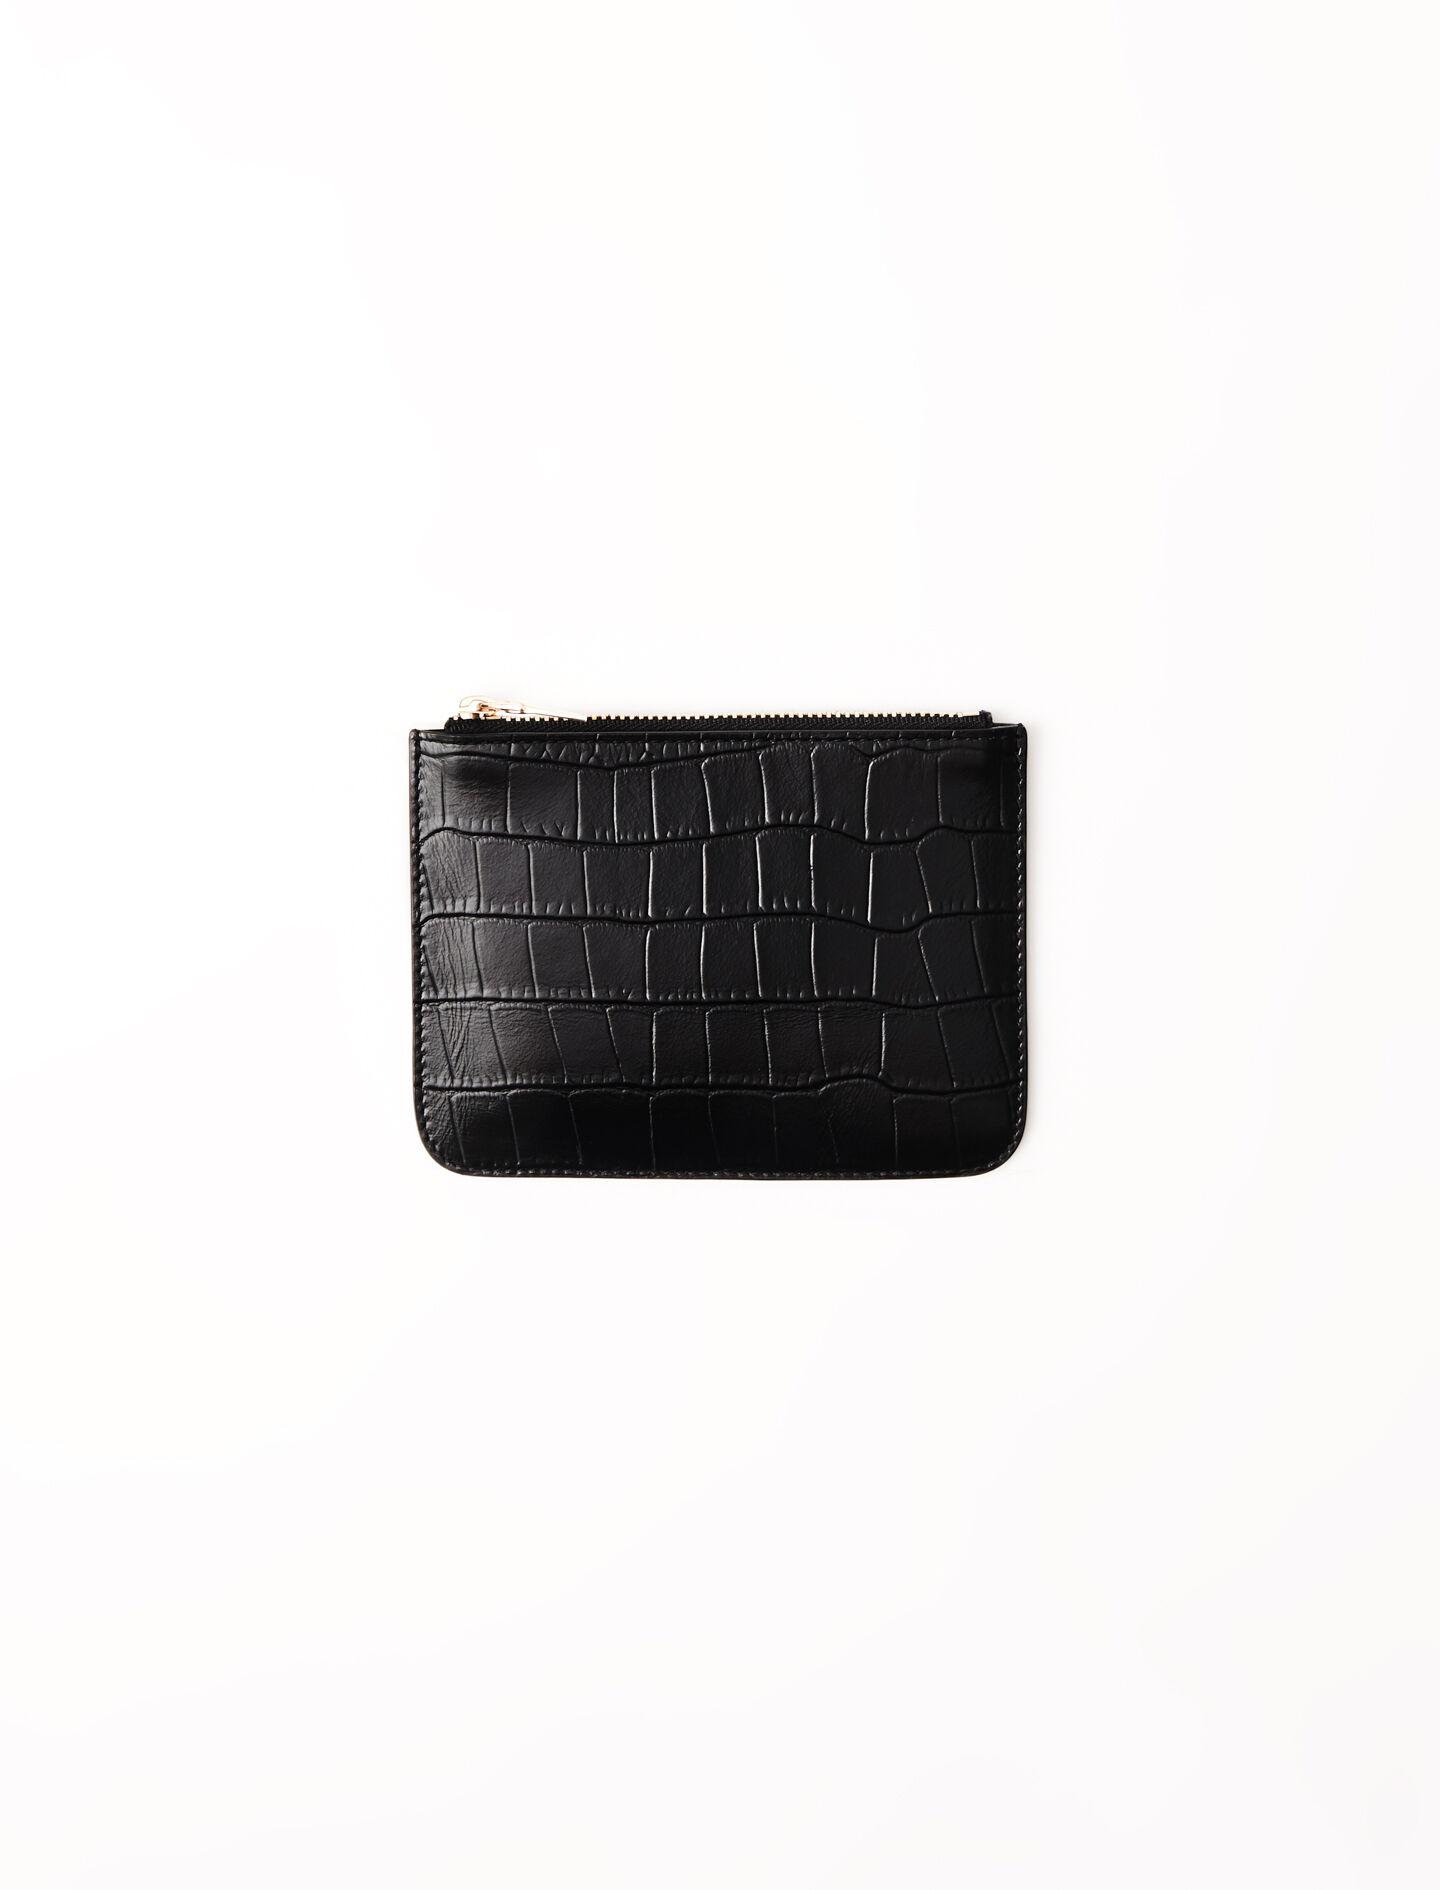 ZIPPED EMBOSSED-LEATHER POUCH